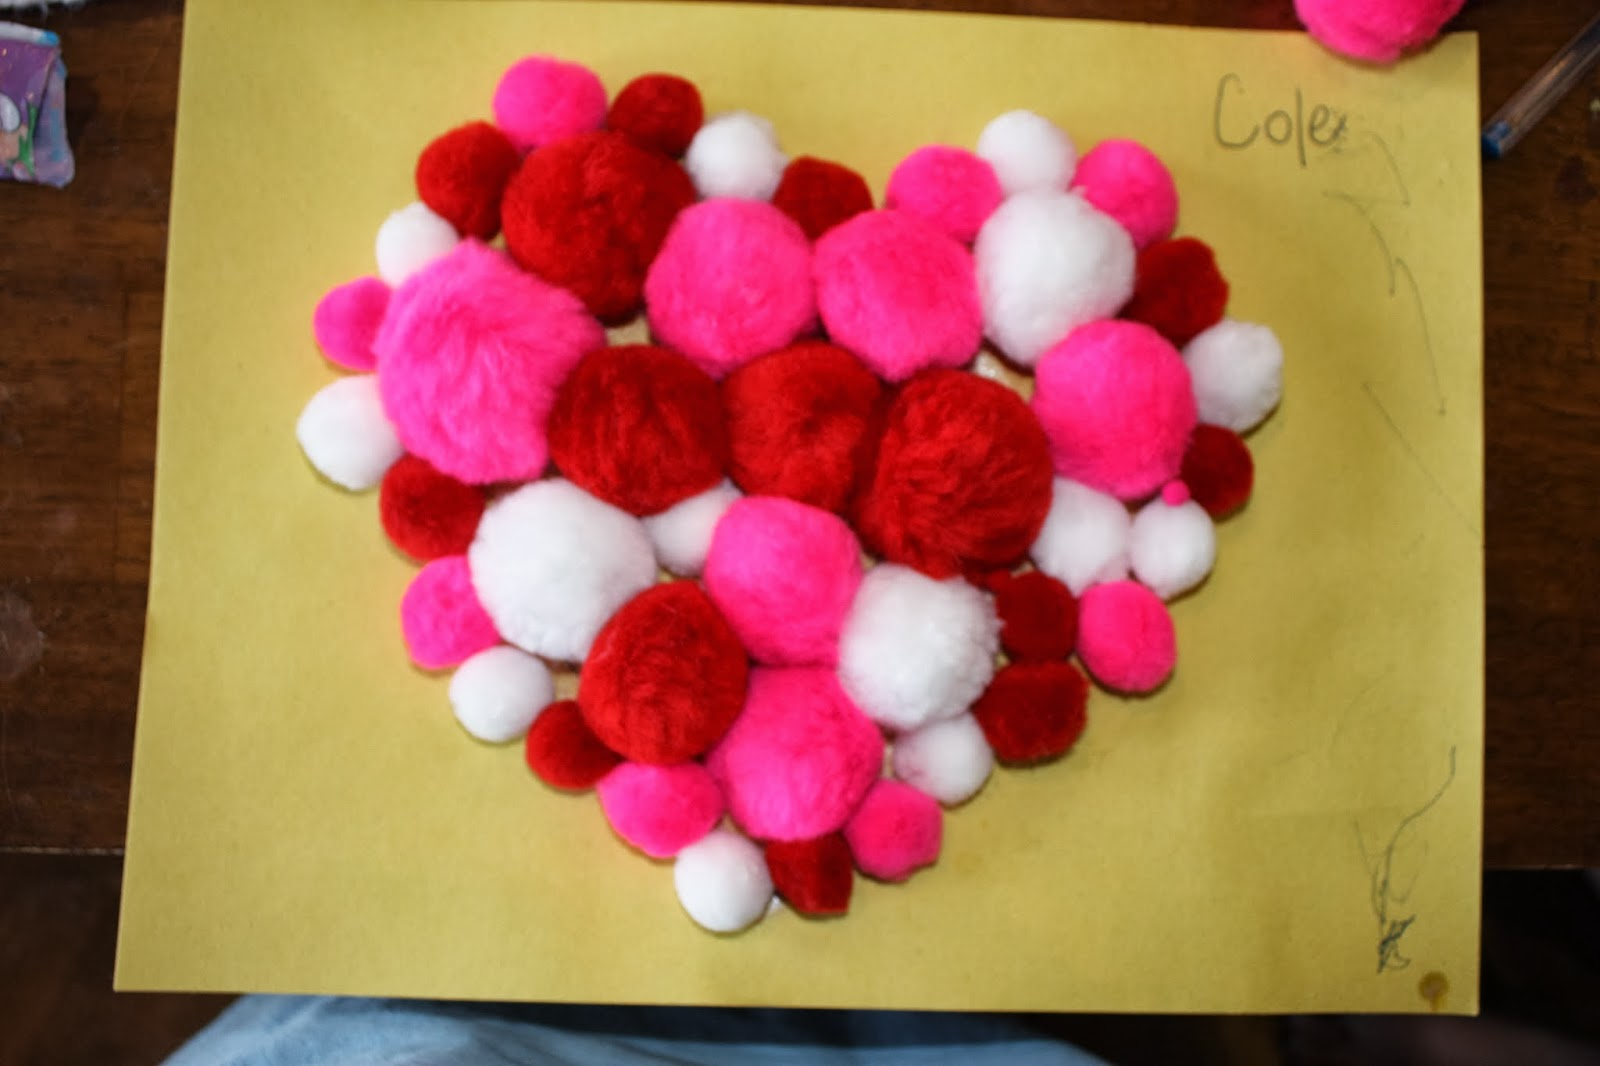 Crafts for a 3 year old - Crafts For 5 Year Olds Crafts For 4 Year Old Girls Crafts 4 Year Old